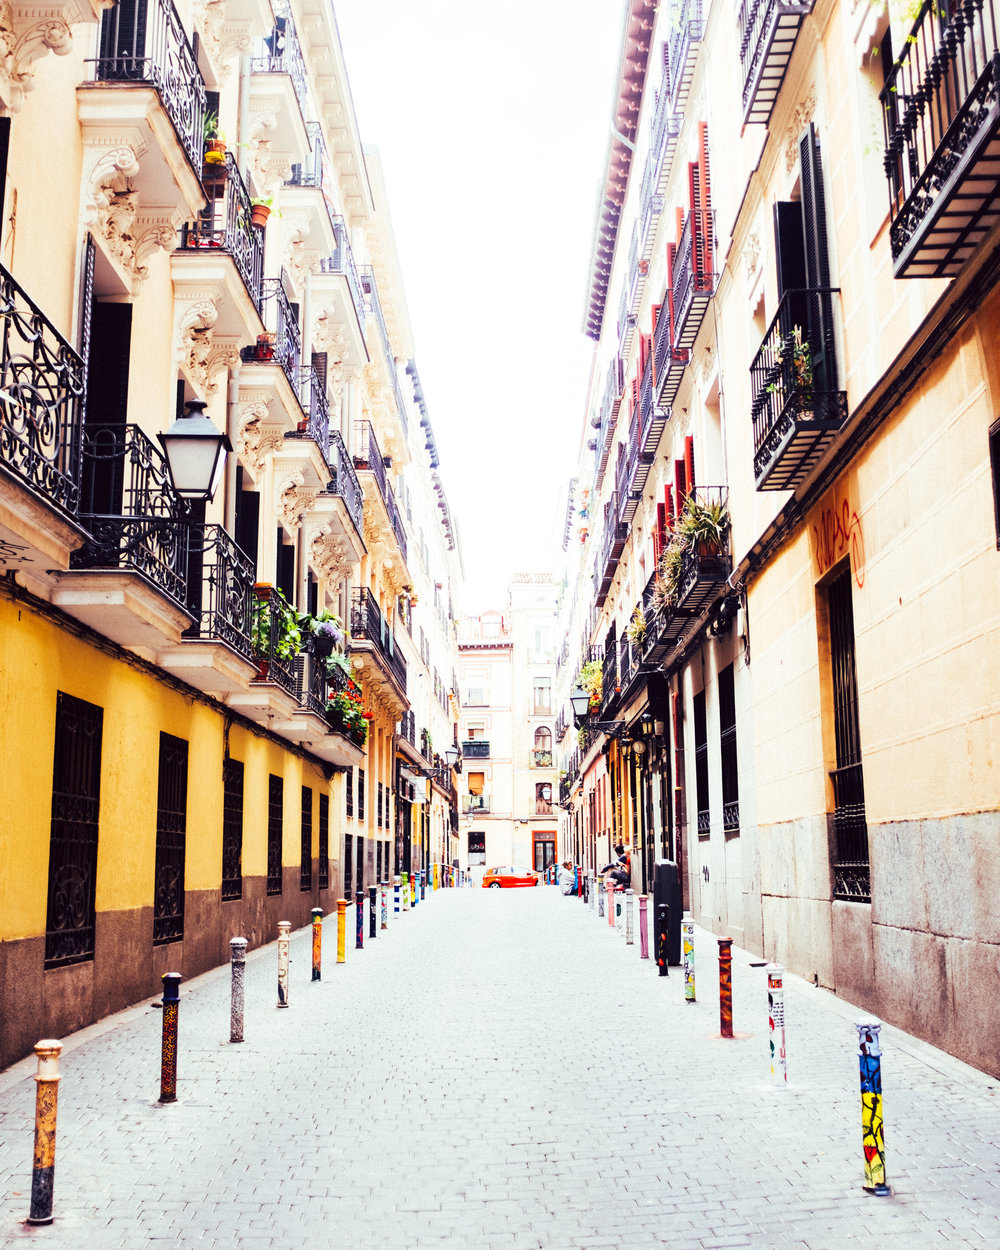 Be prepared to walk to discover all the small streets of Madrid